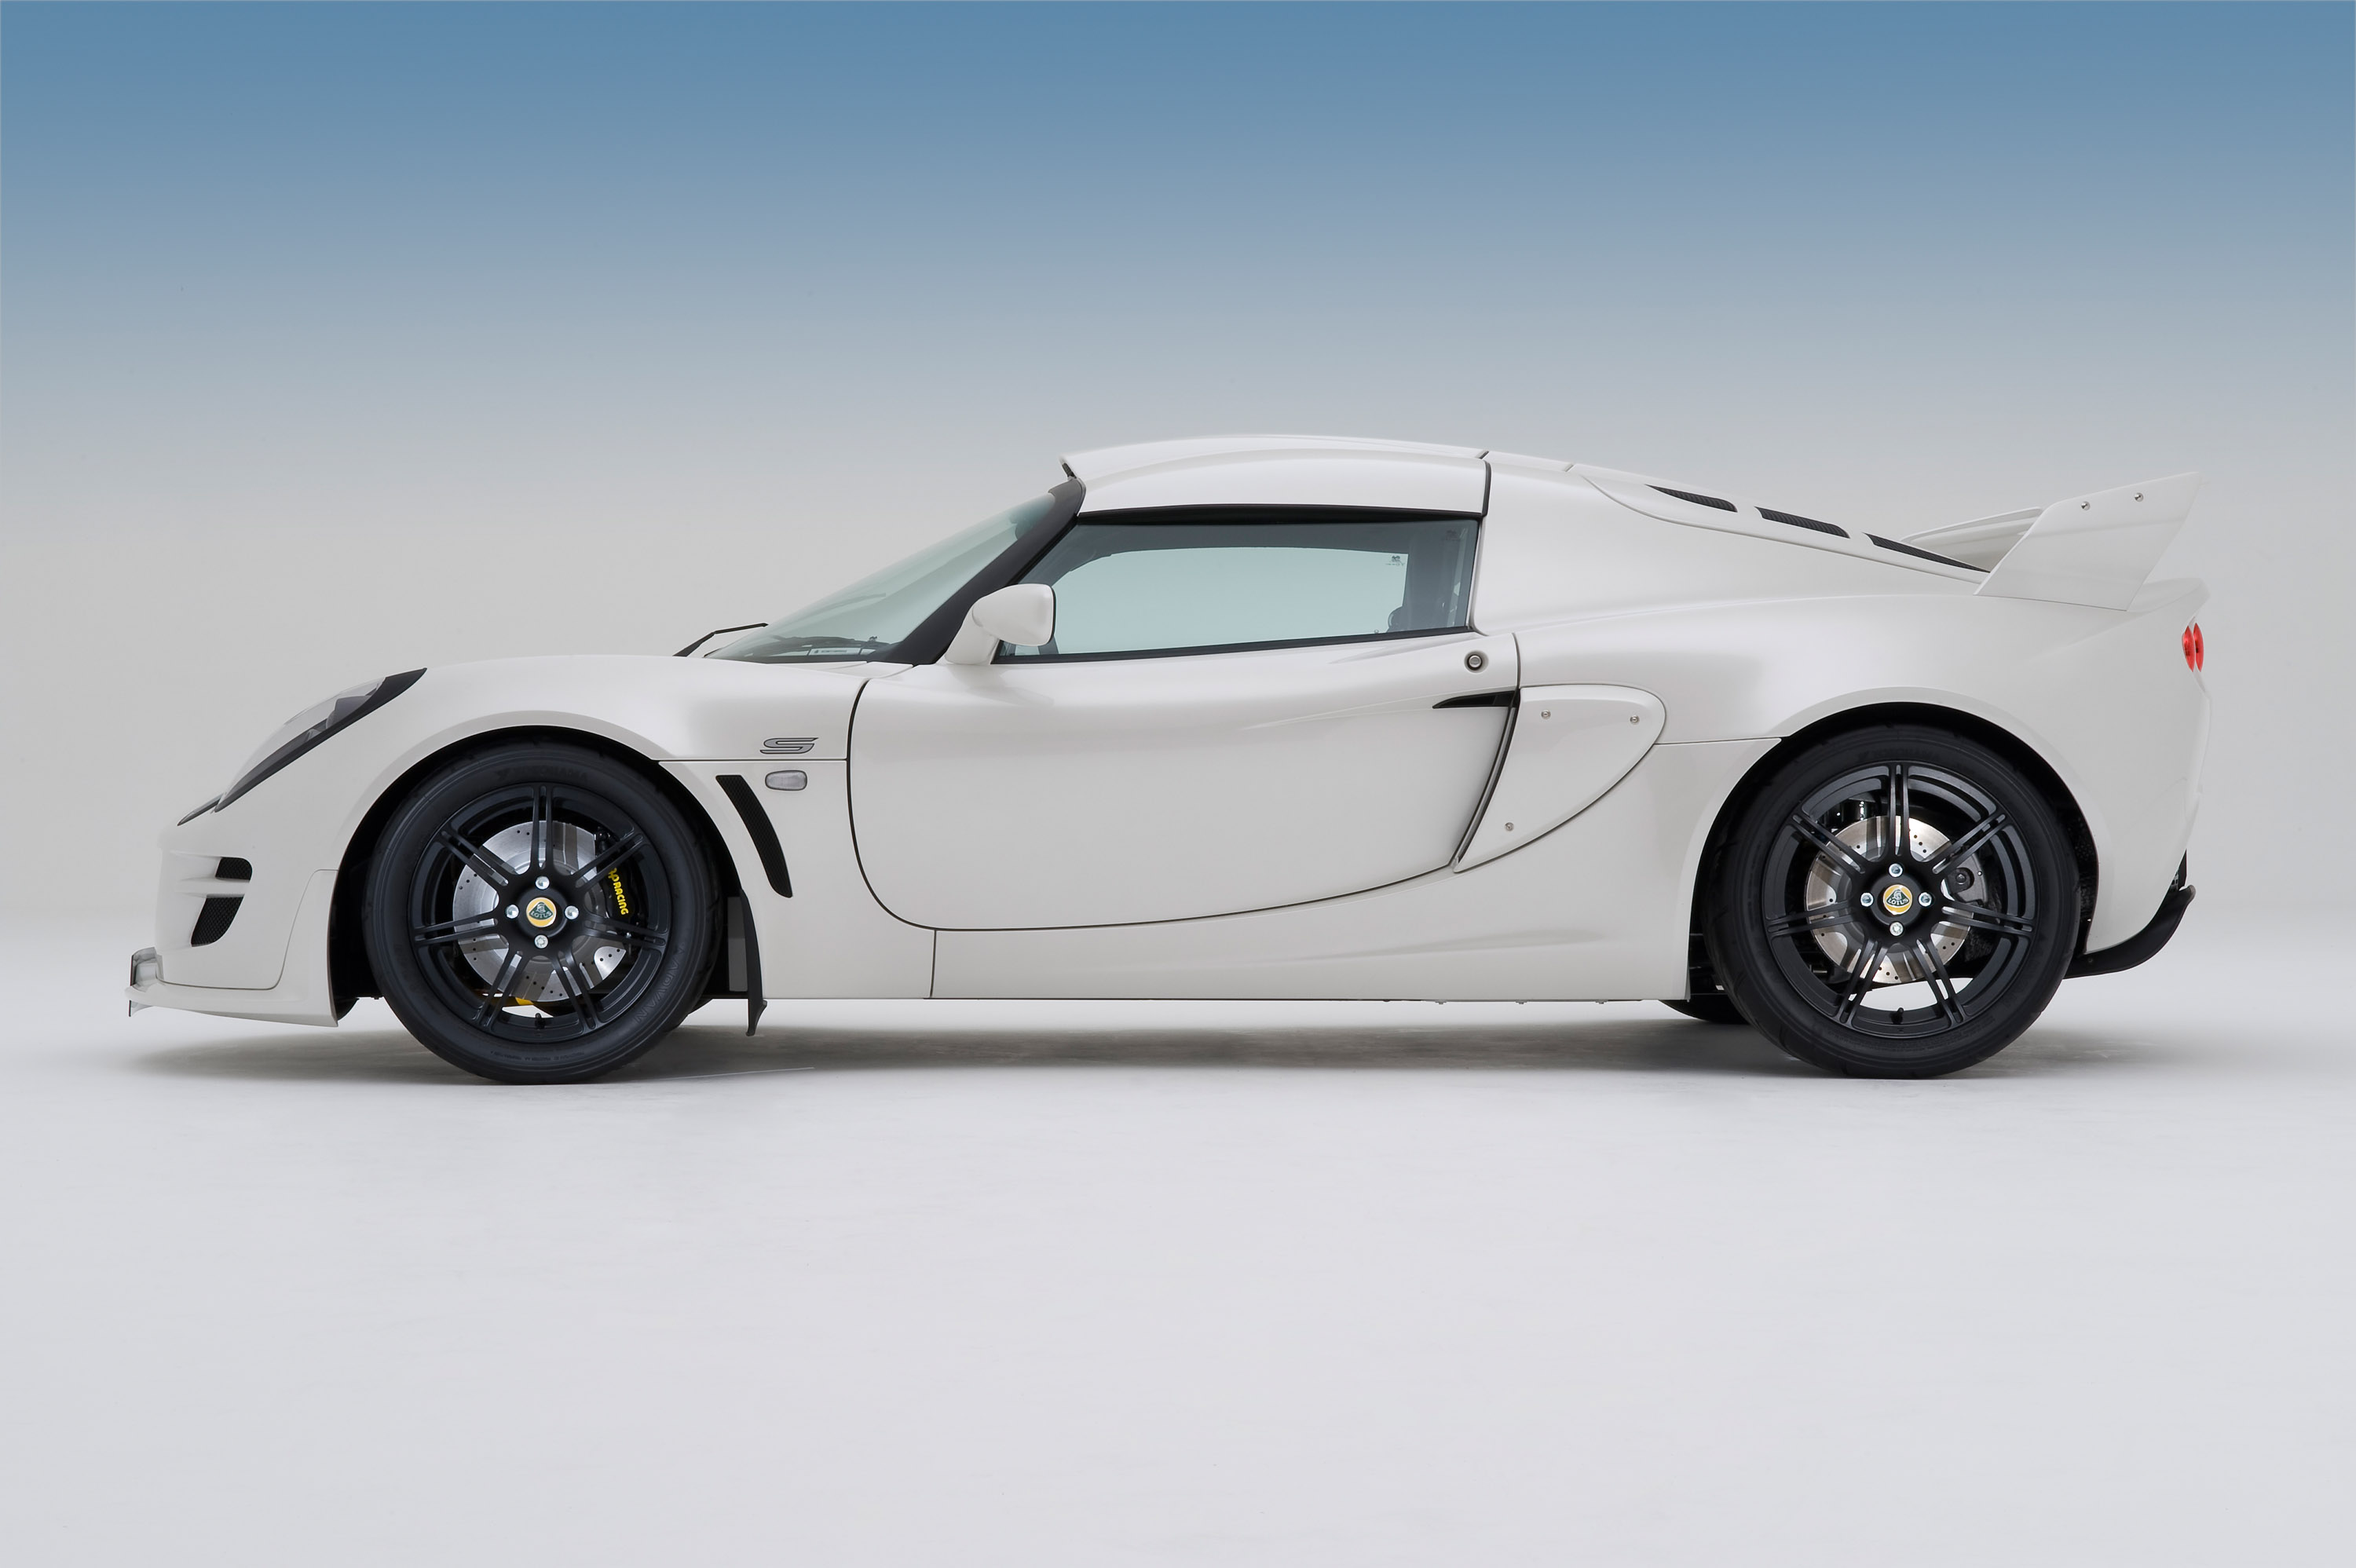 2010 Model Year Elise And Exige Now Cleaner Than Ever